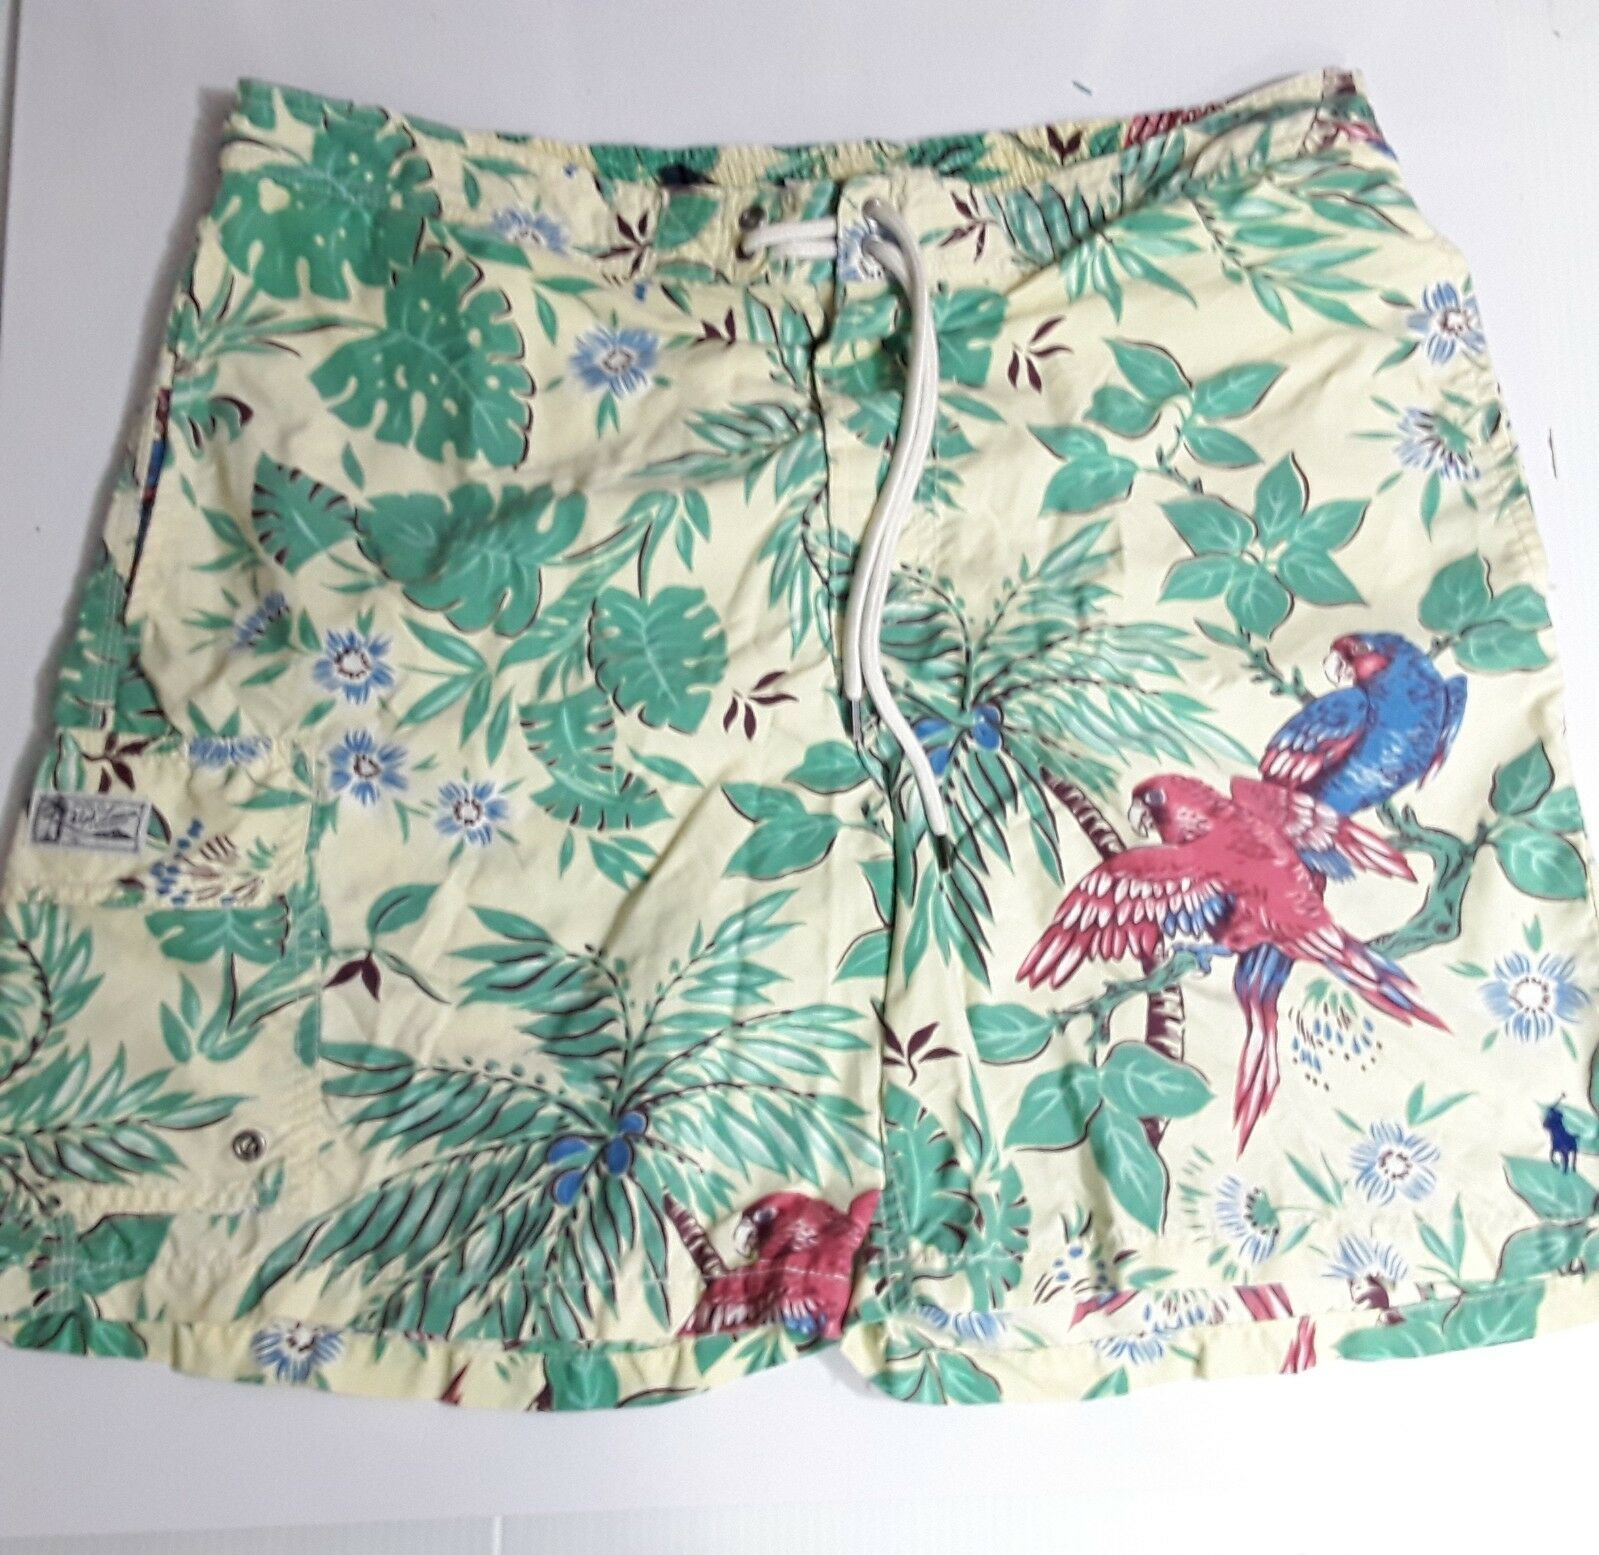 MENS POLO RALPH LAUREN SZ L TROPICAL PARredS PALM TREE LINED SWIM TRUNKS SHORTS